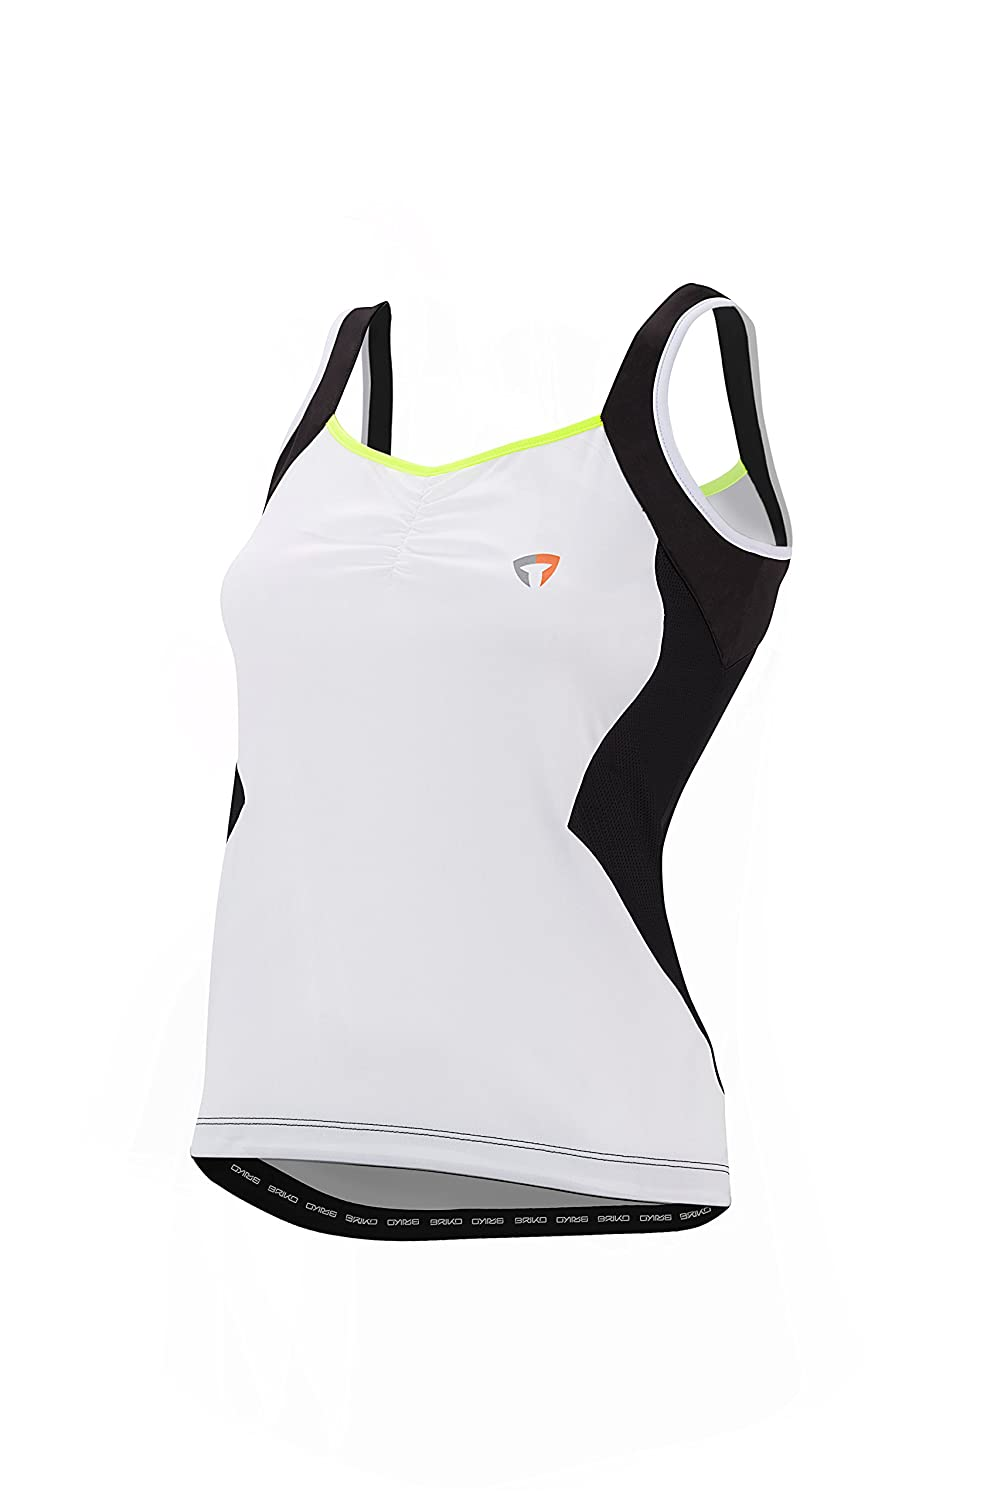 Briko GT Top Lady Damen Rad-Top